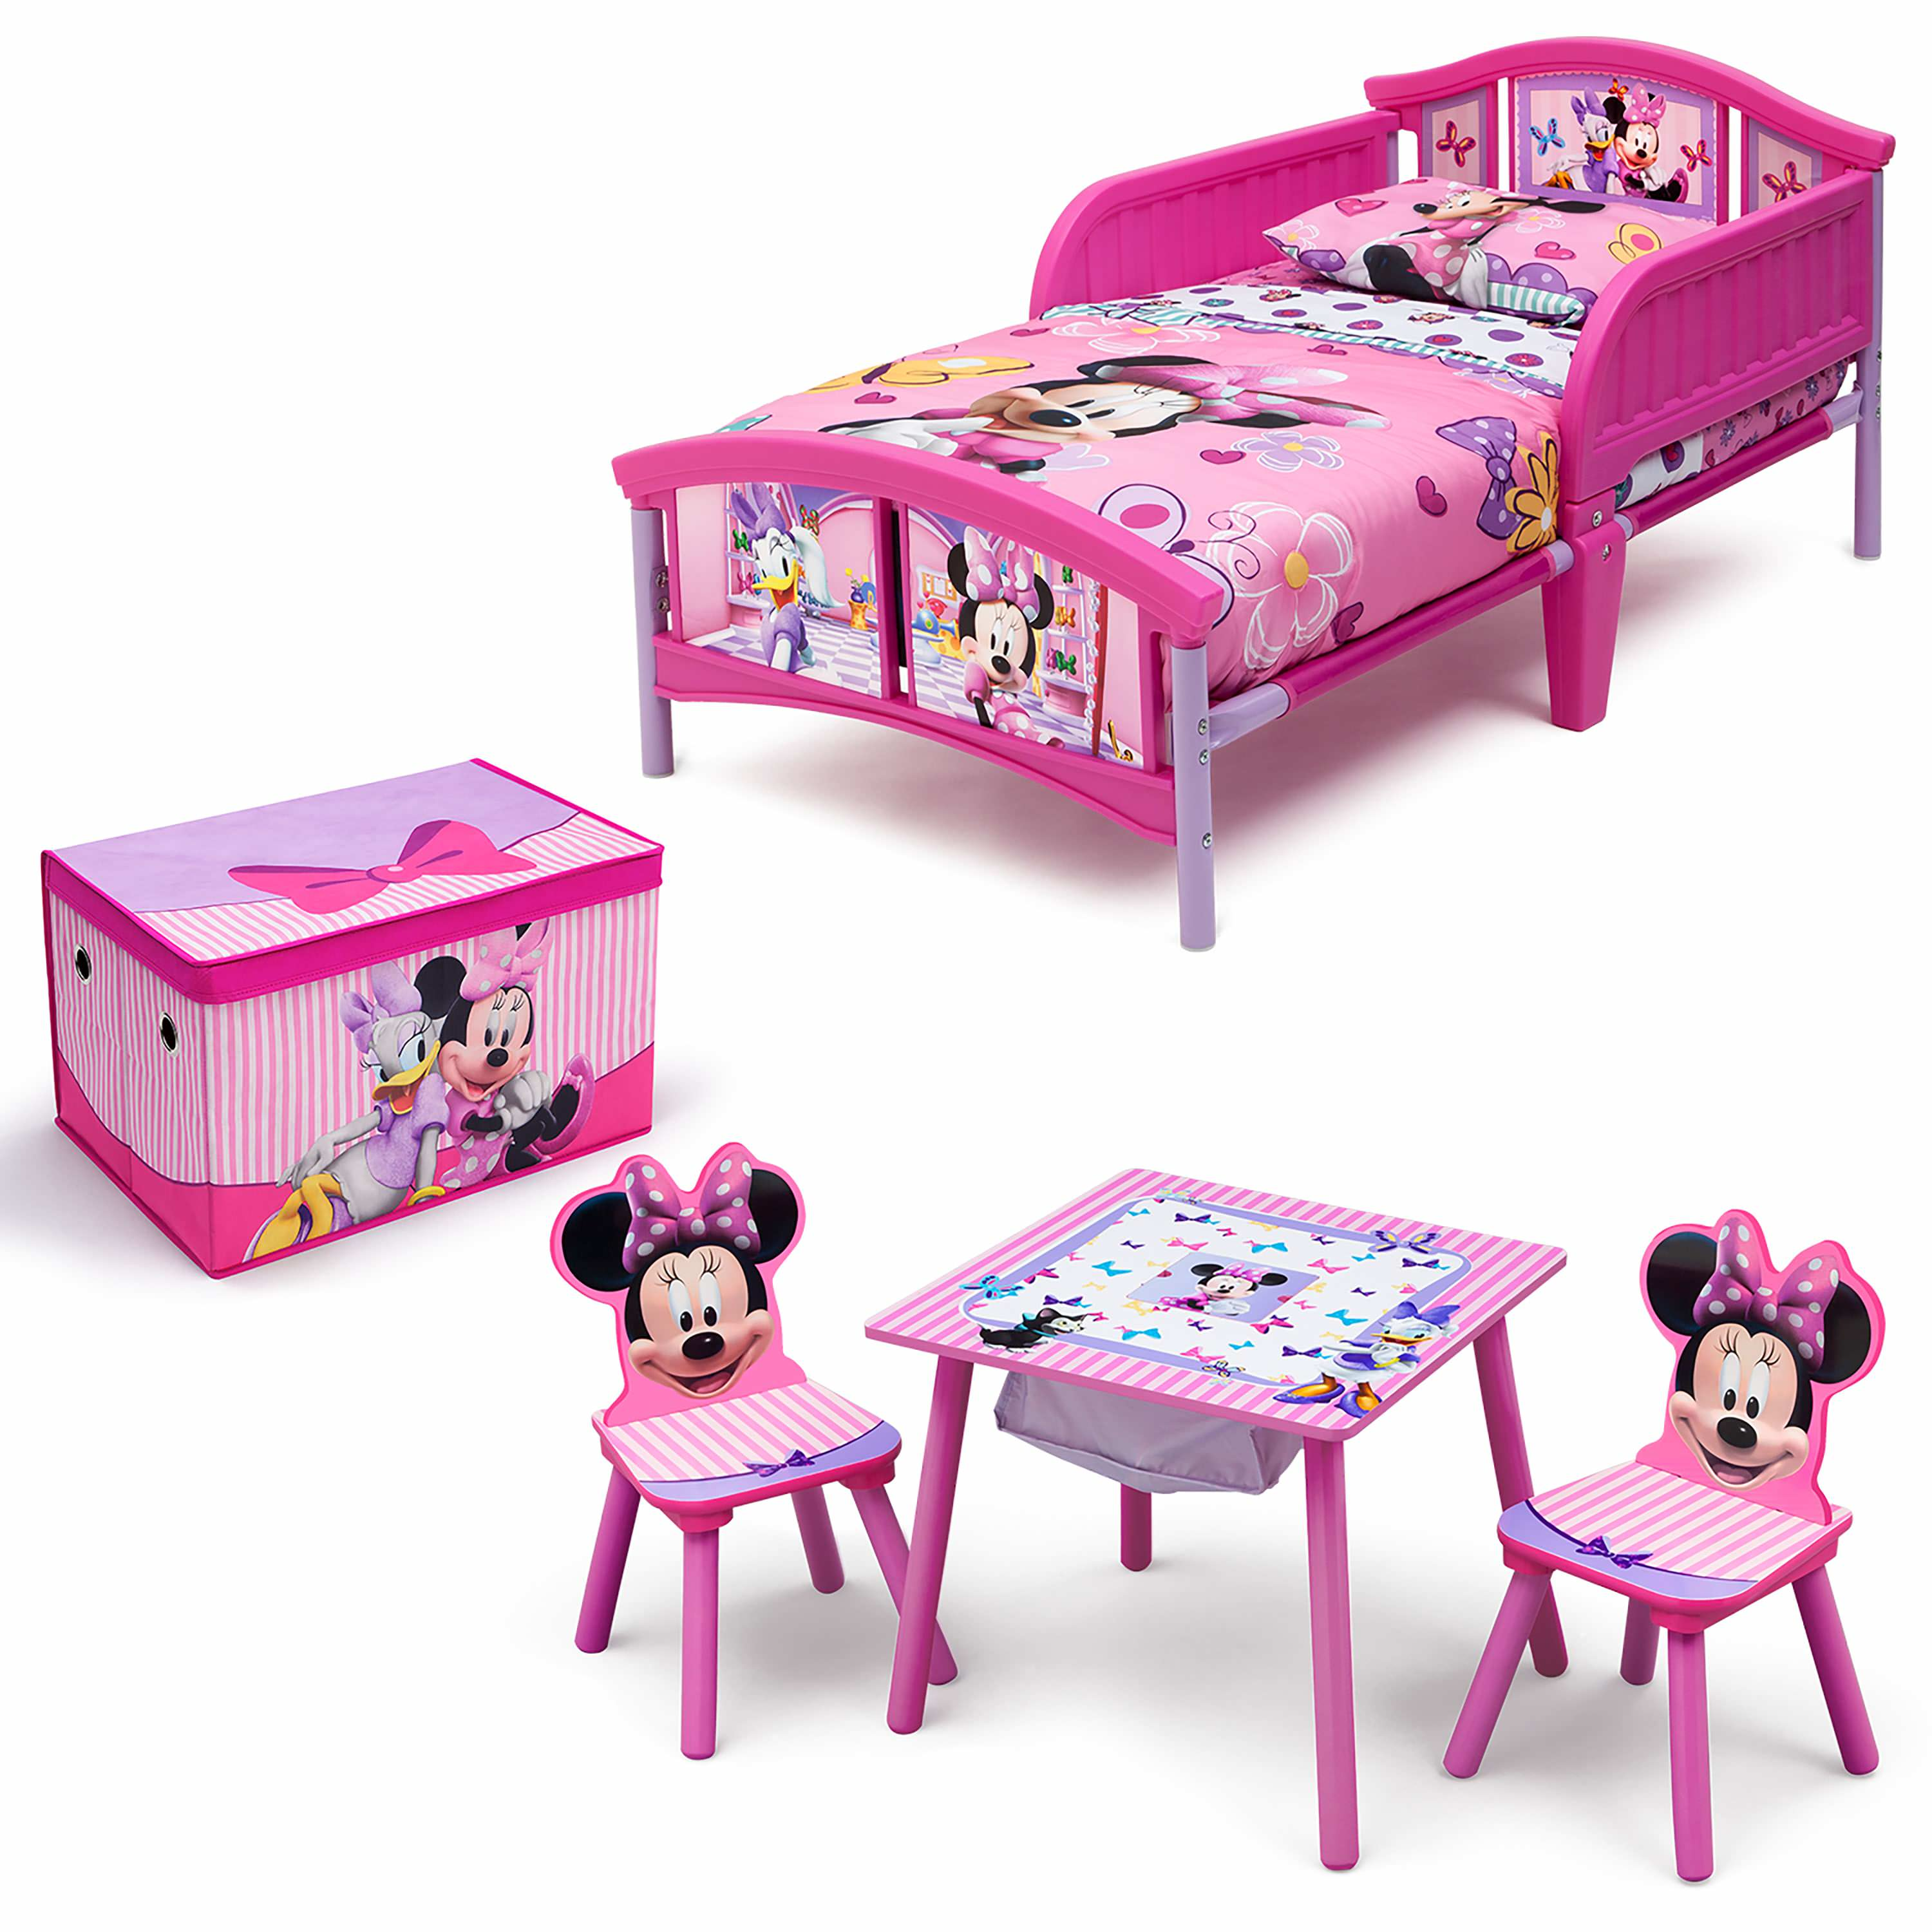 Disney Minnie Mouse Room In A Box With BONUS Table U0026 Chairs Set